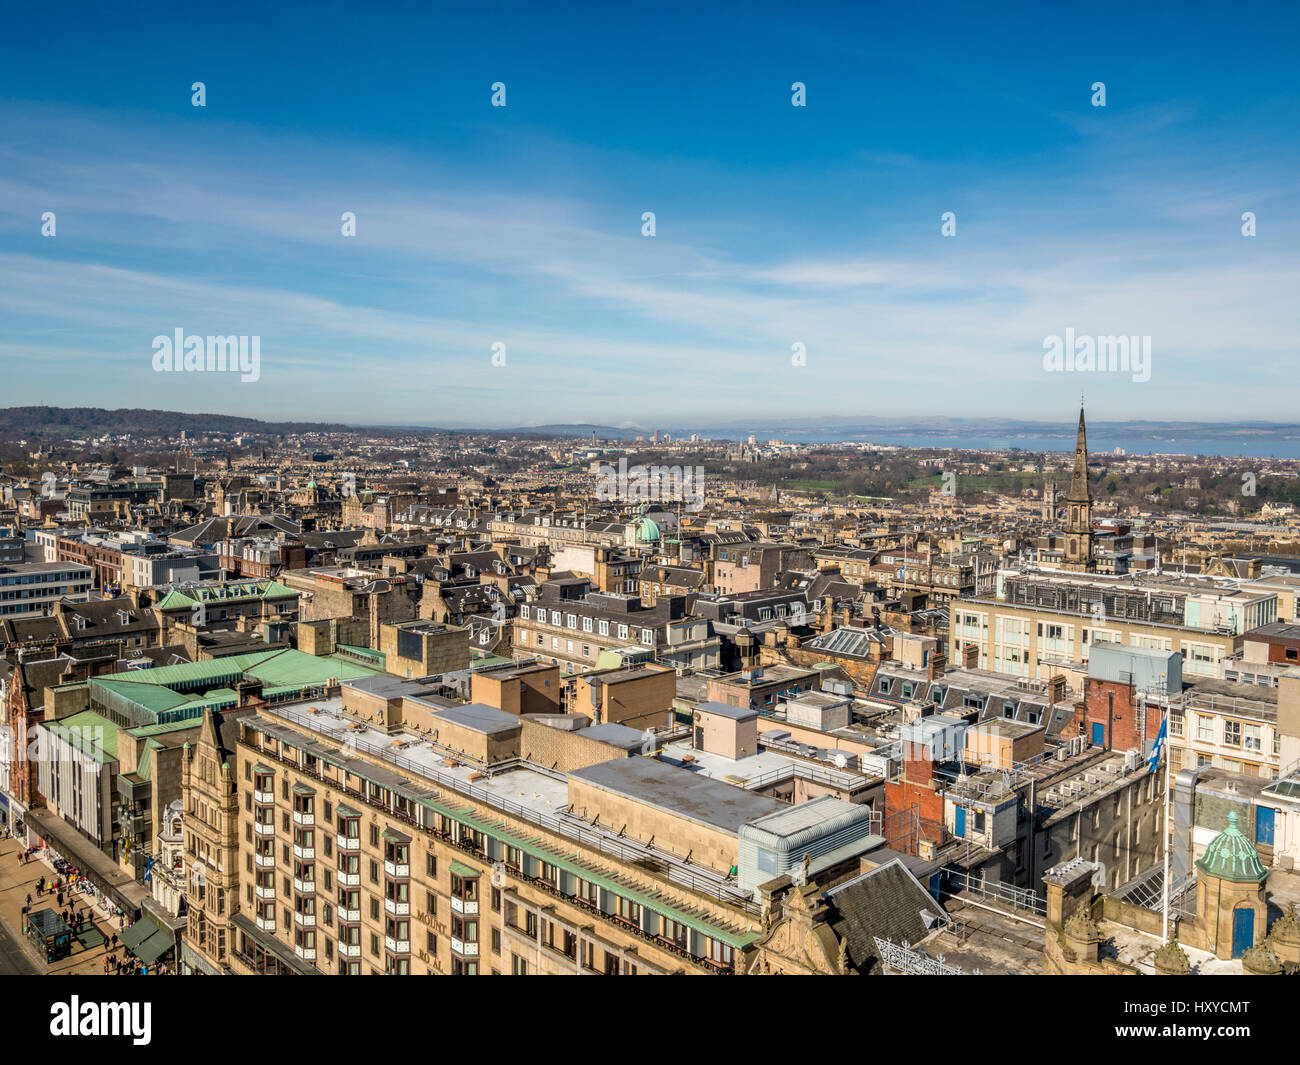 View across Edinburgh rooftops towards The Firth of Forth, Scotland. Stock Photo